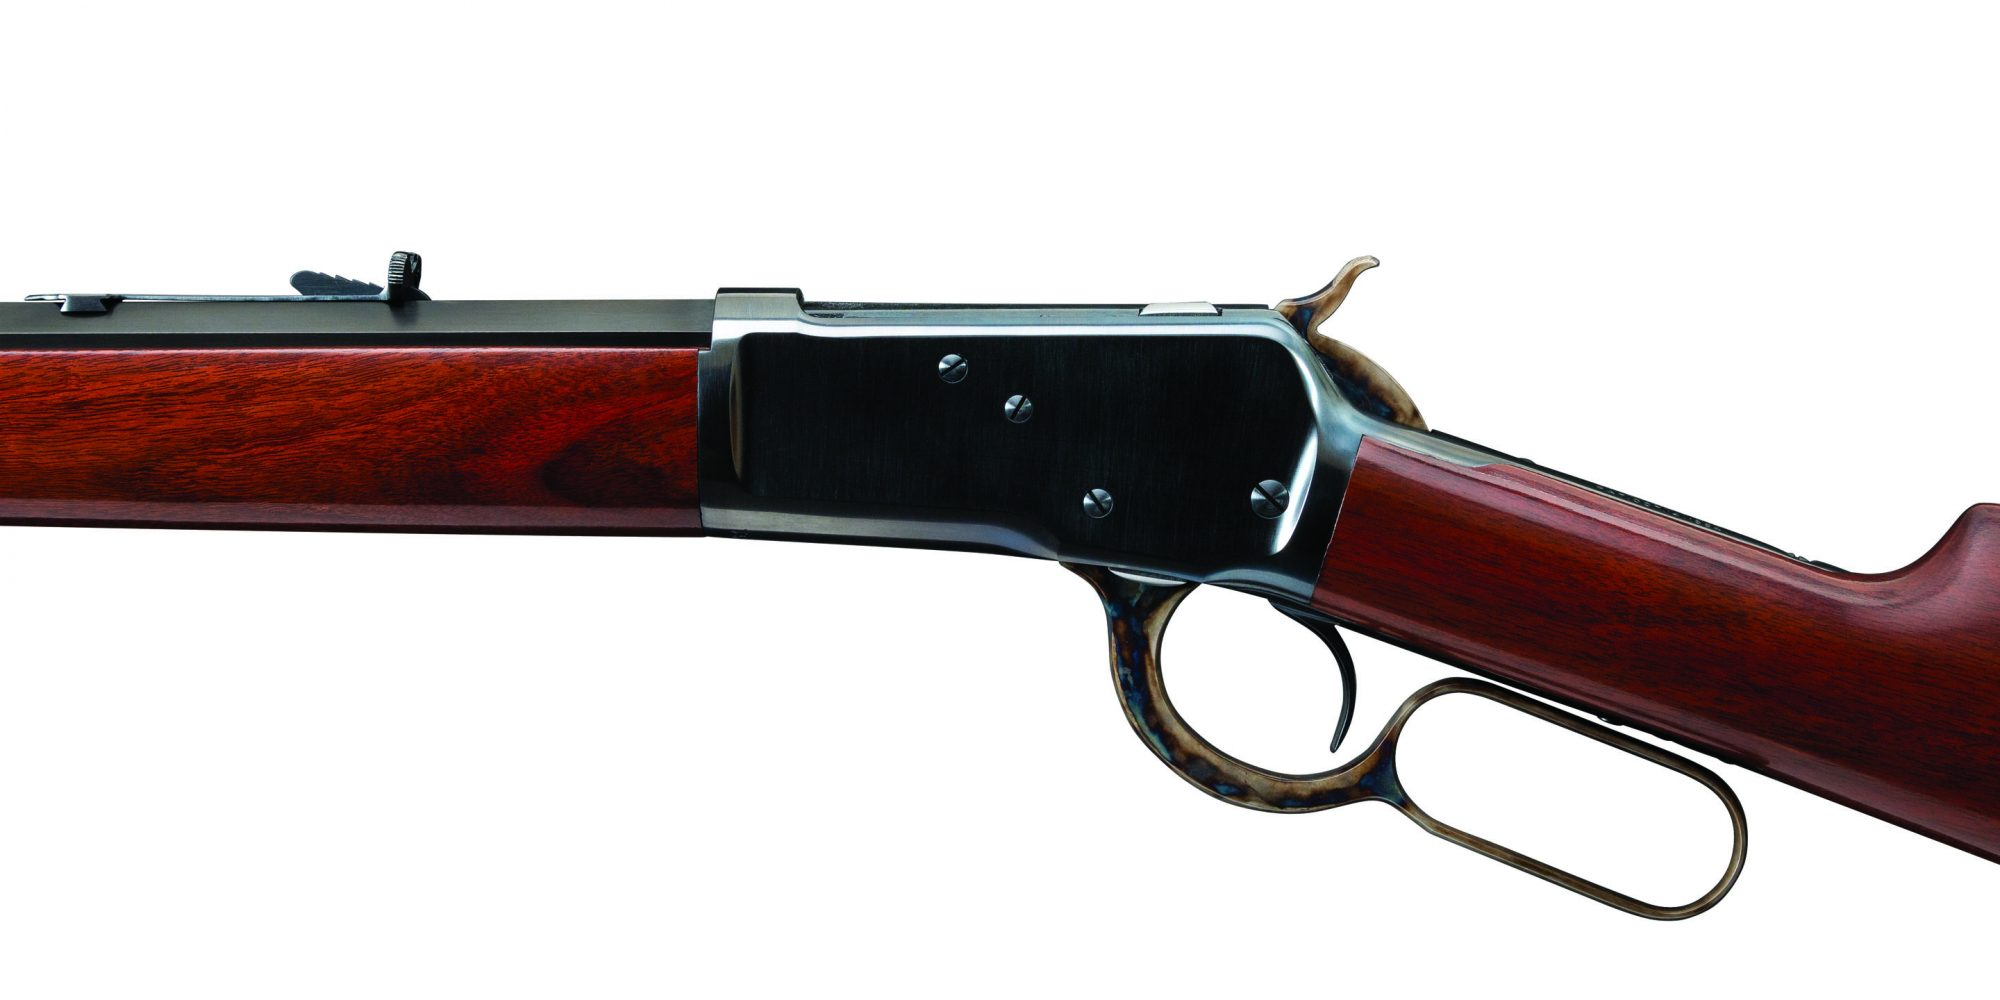 Photo of a restored Winchester Model 1892 from 1900, restored in 2019 by Turnbull Restoration Co. of Bloomfield, NY